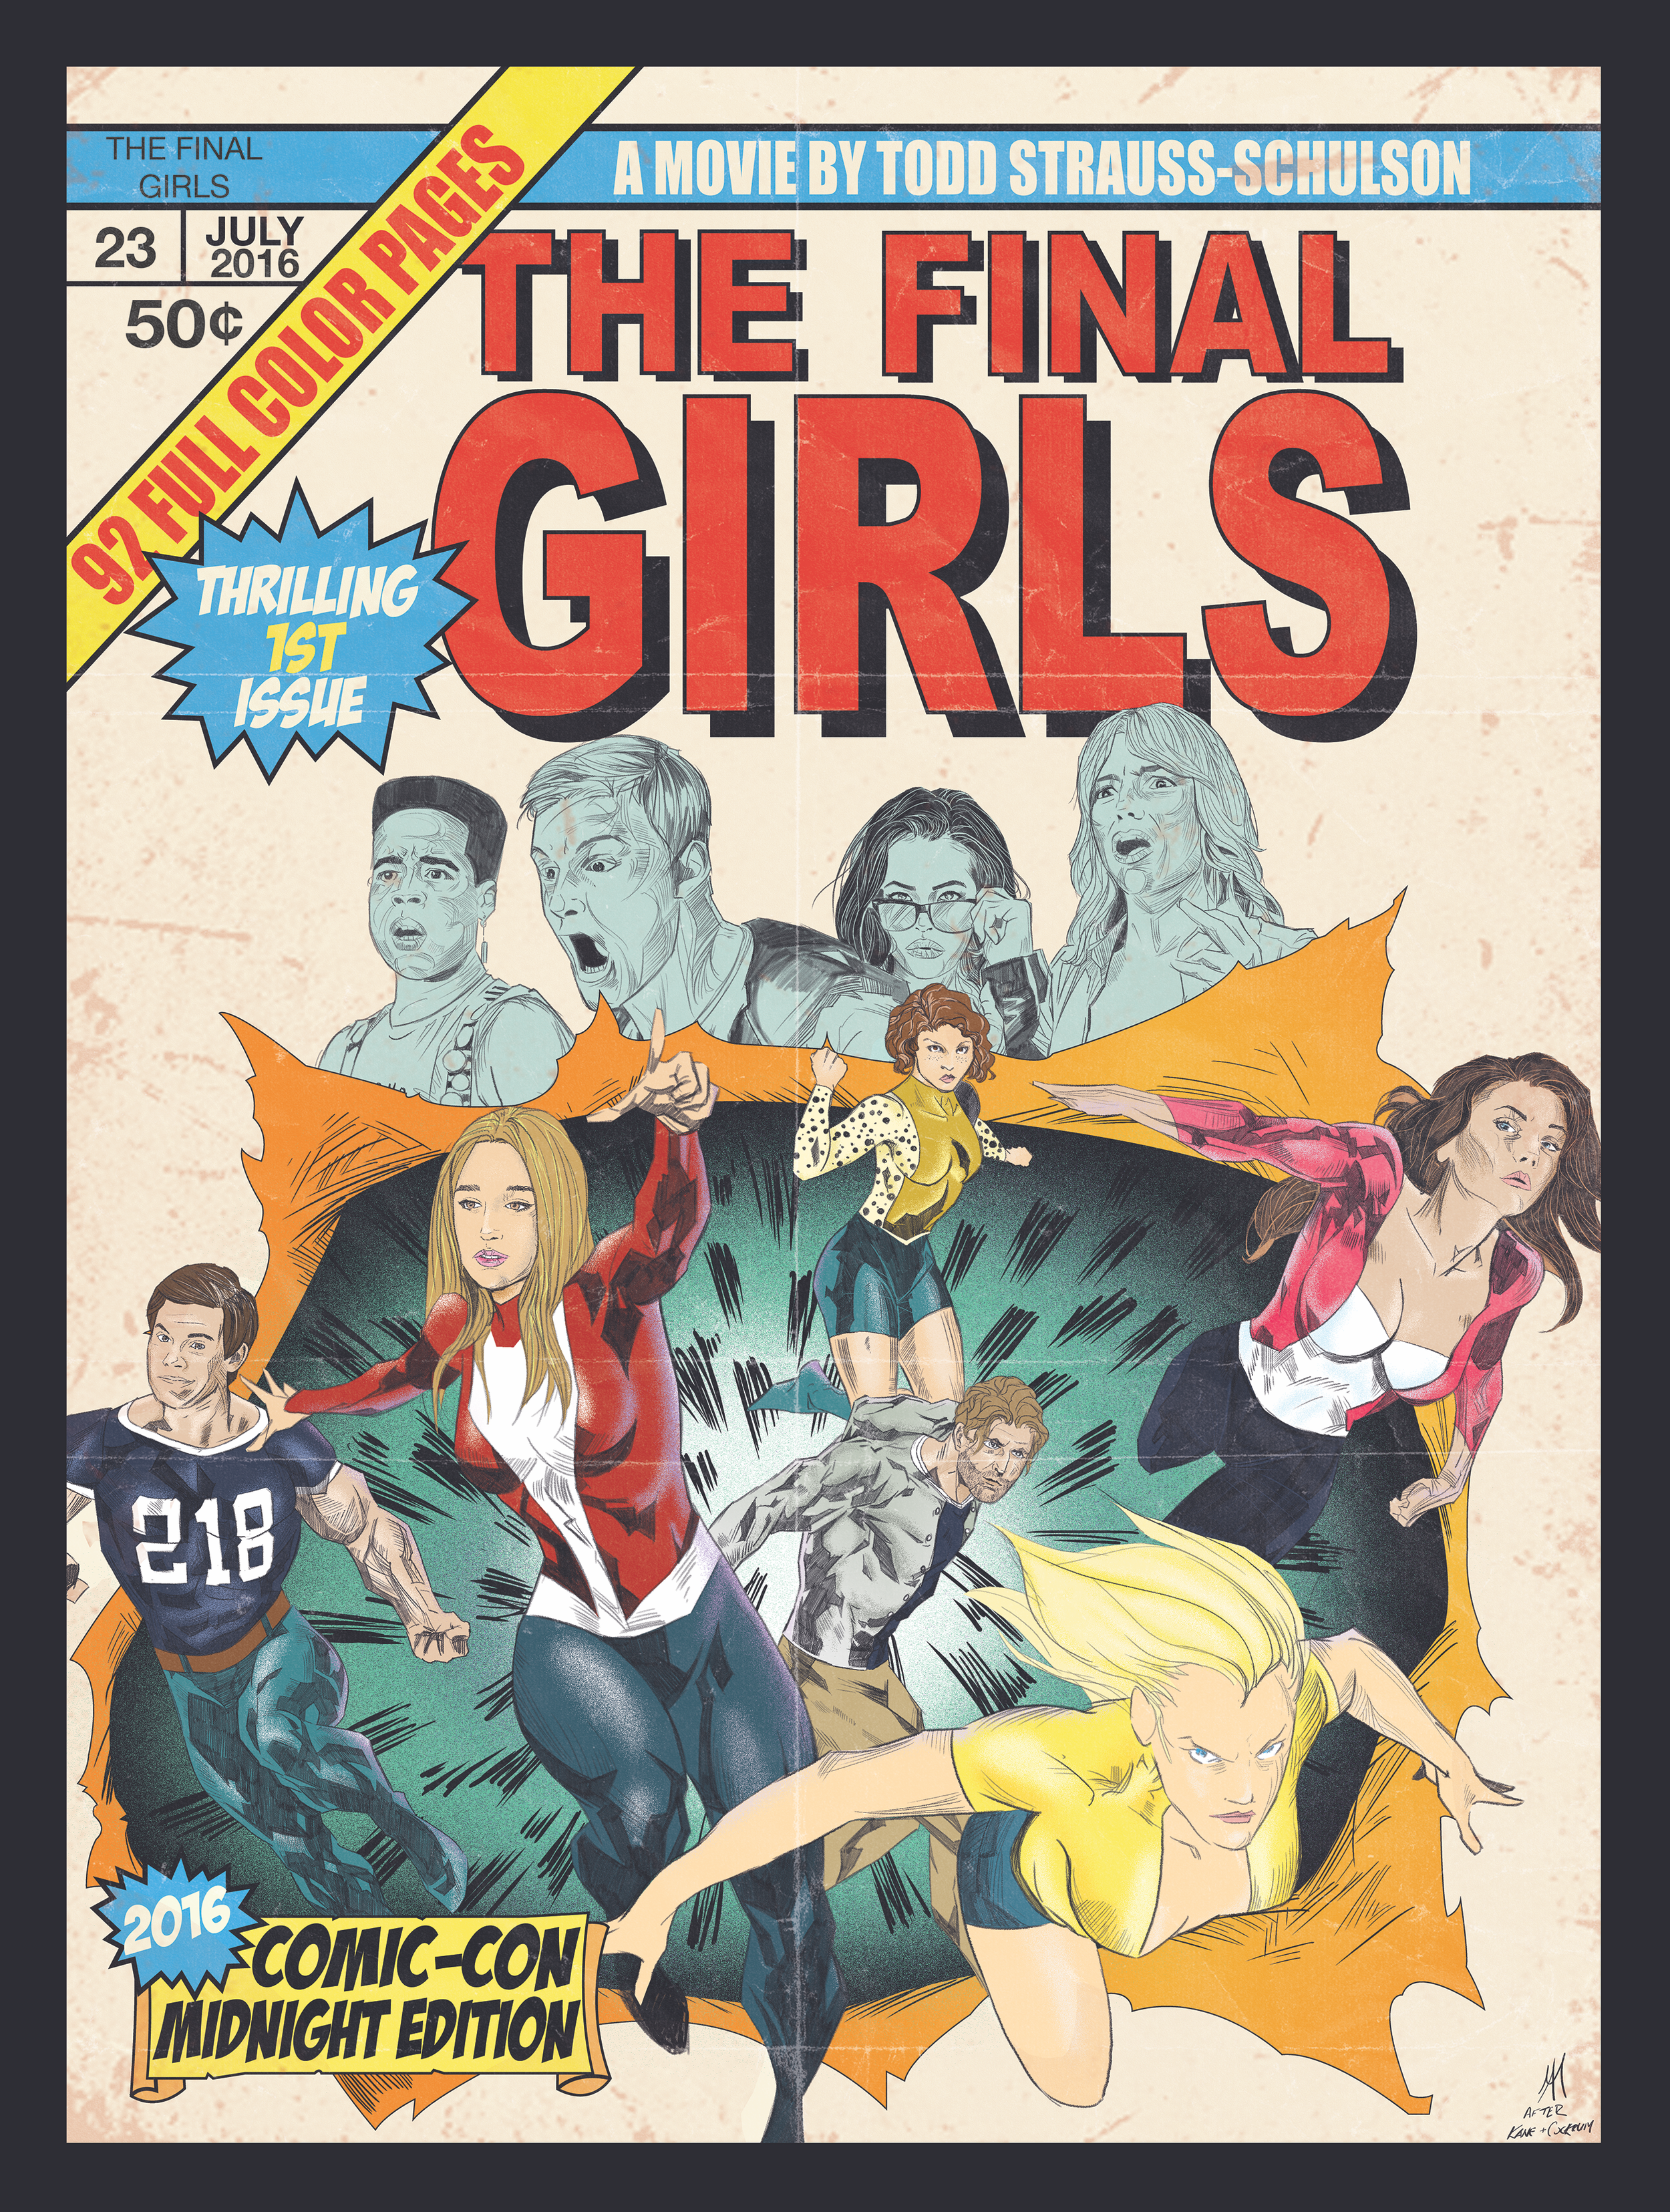 The Final Girls (San Diego Comic Con 2016)